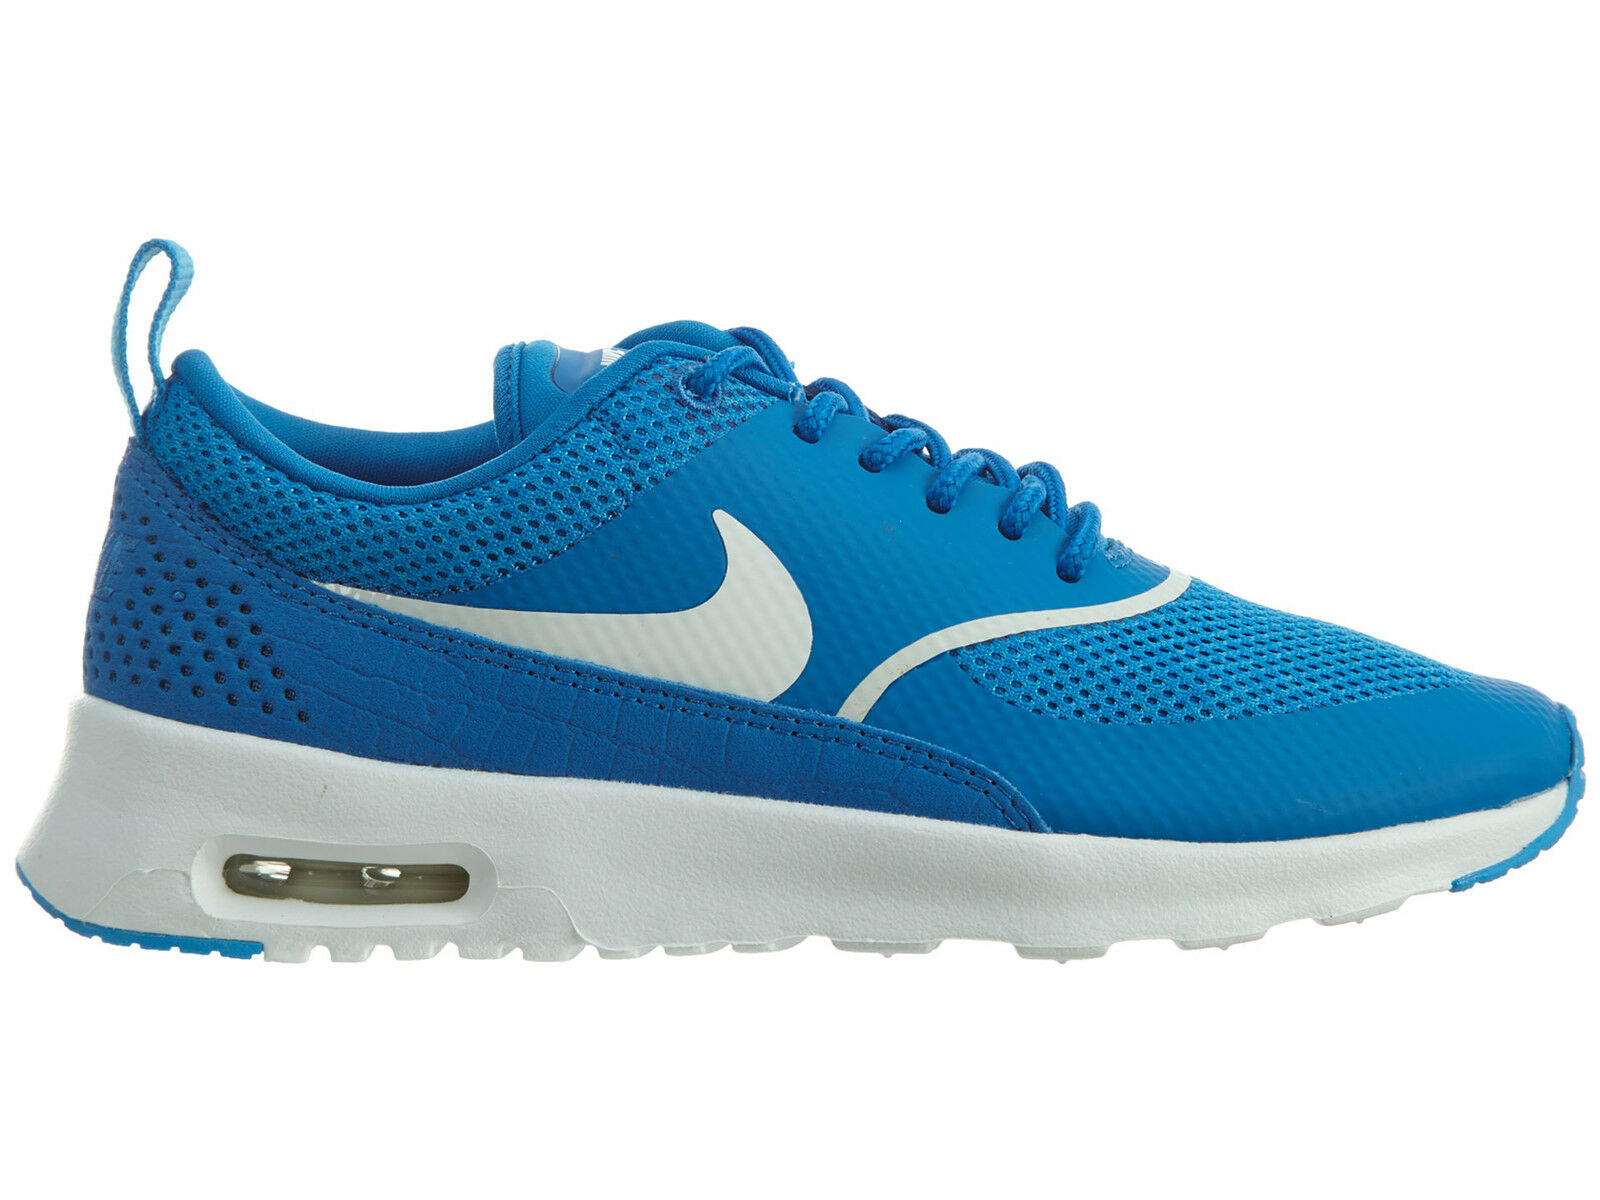 Nike Air Max Thea Womens 599409-413 Blue Spark Glow White Running Shoes Size 6.5